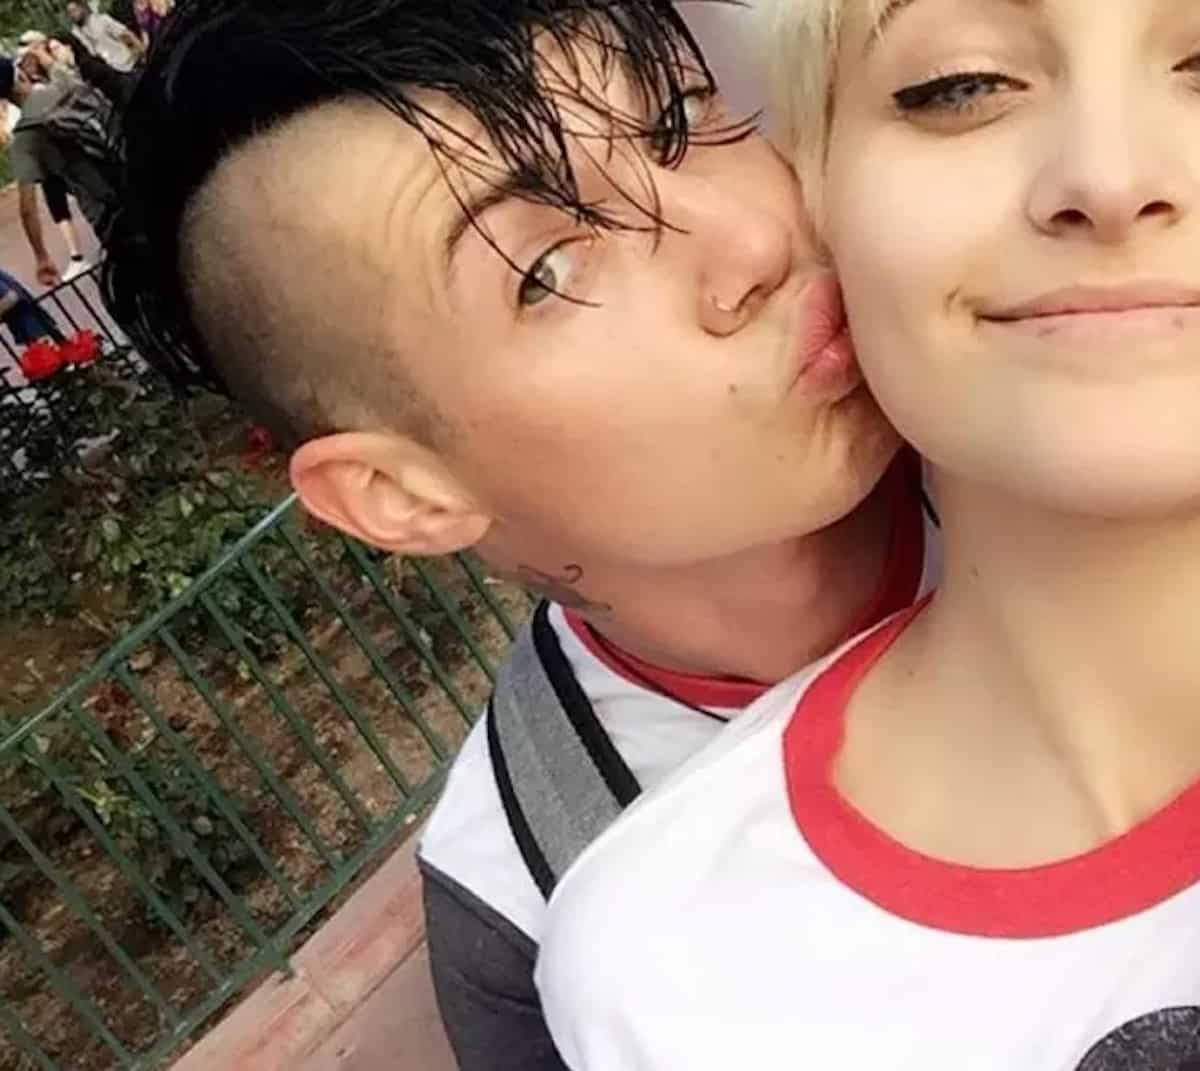 paris jackson dumps michael snoddy